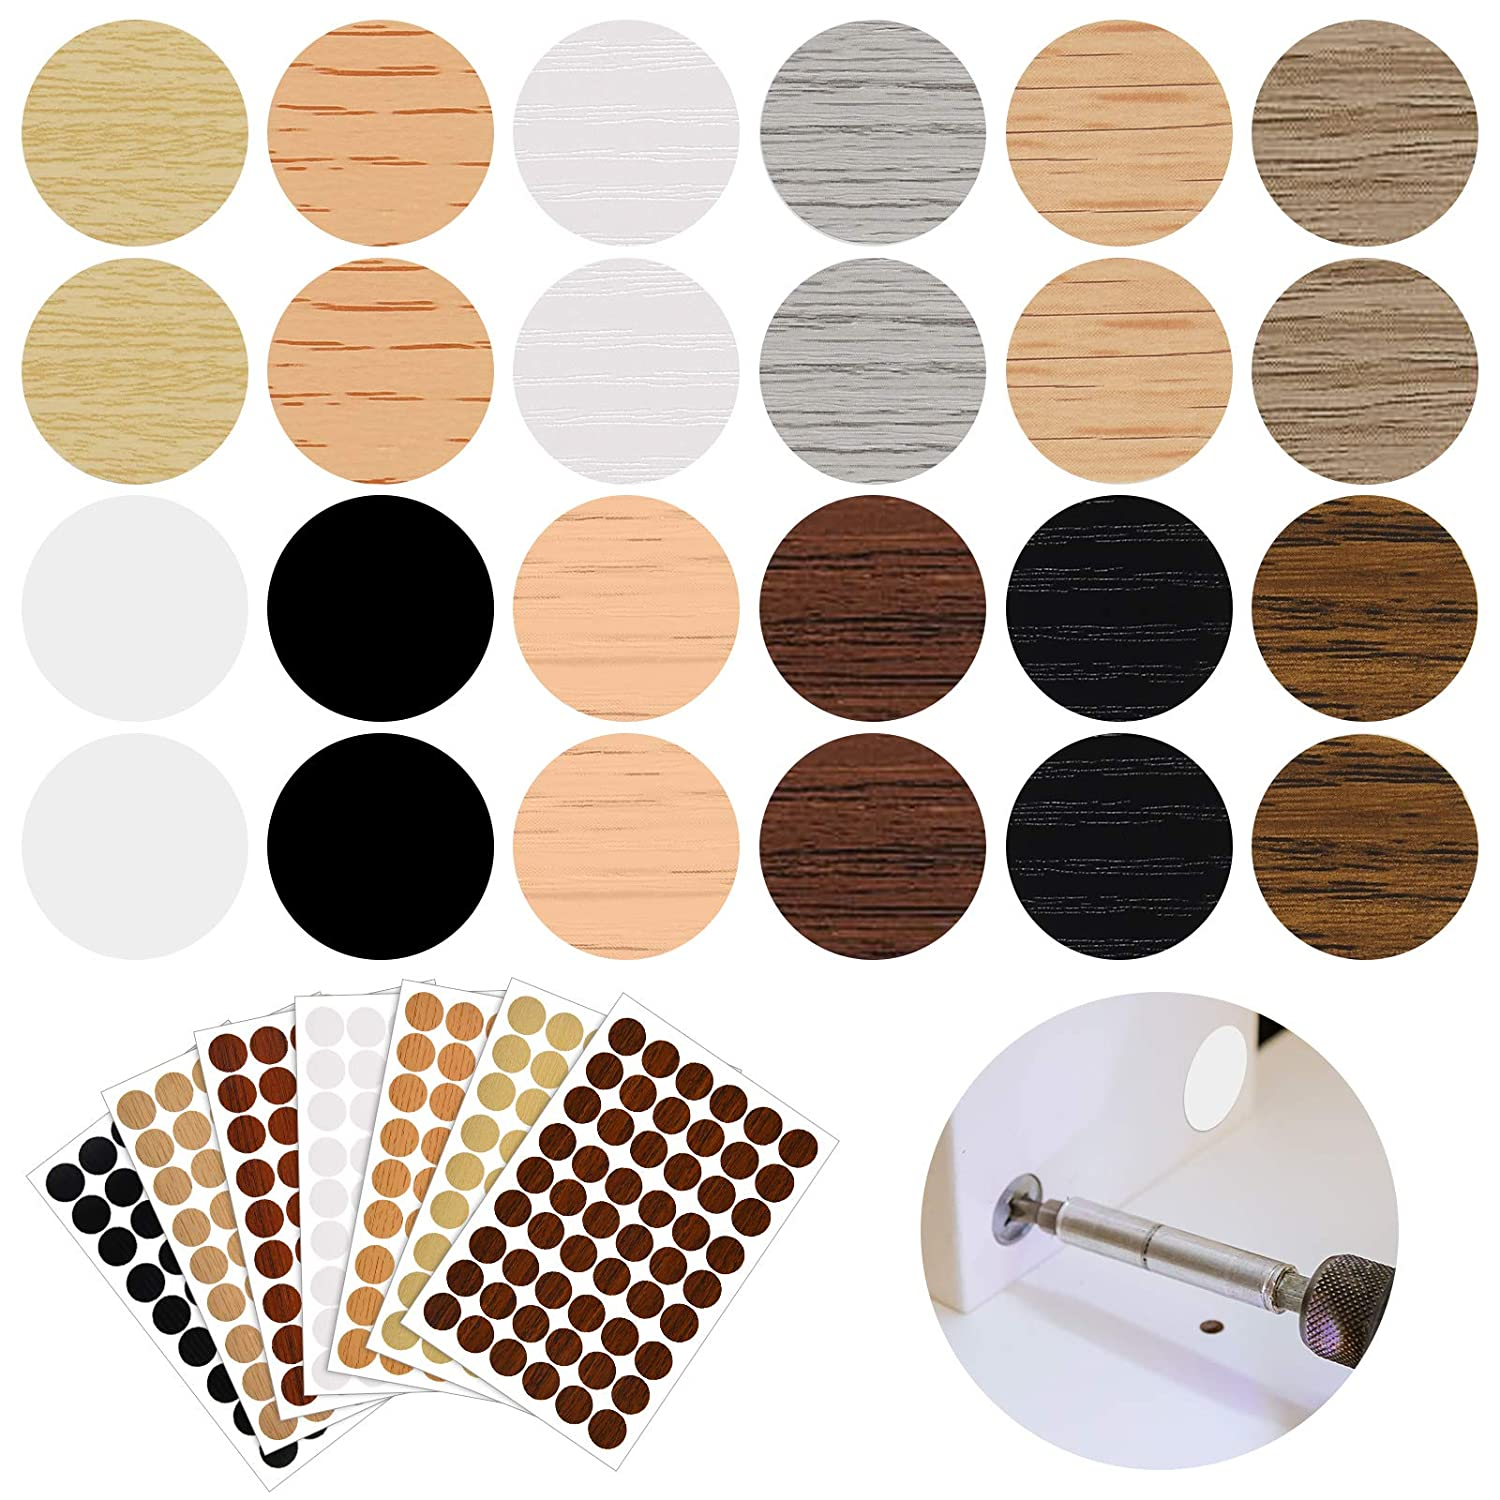 648 Pieces Adhesive Screw Hole Covers Stickers PVC Cover Caps 12 Colors Waterproof Wood Textured Cover for Wall Cabinets Desk Screws Furniture Repairing